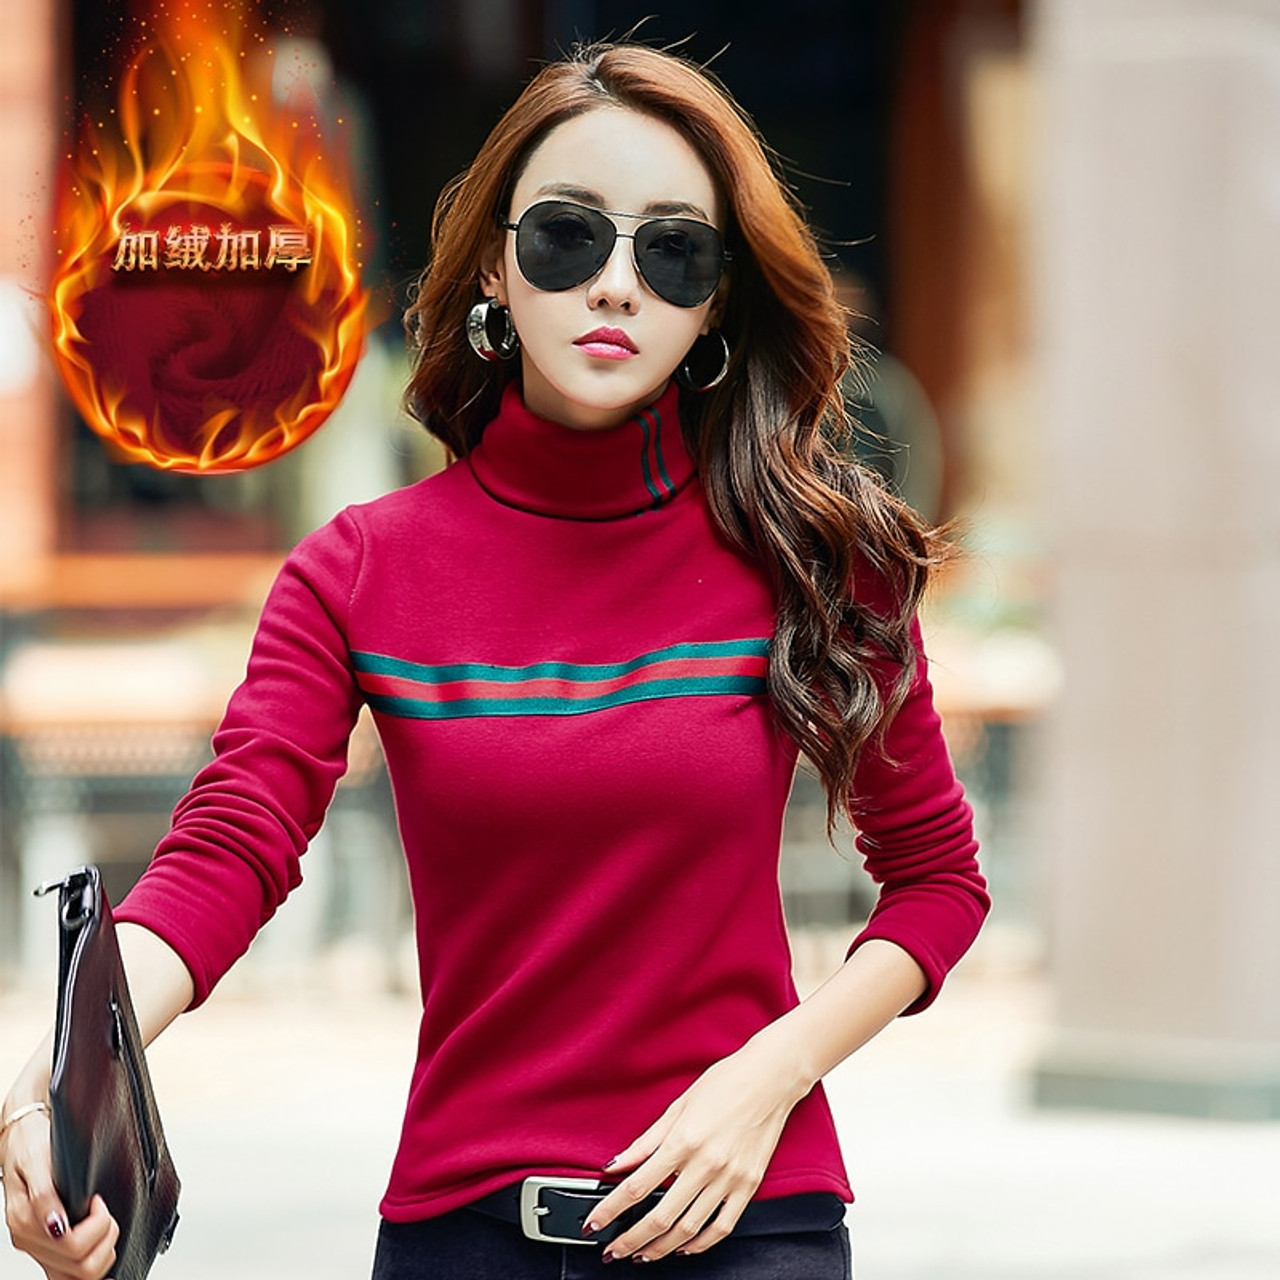 96953aa3d3e63 Women Winter T Shirt Warm Basic Tees Solid Turtleneck Long Sleeve Slim  Shirts Ladies Plus Size ...